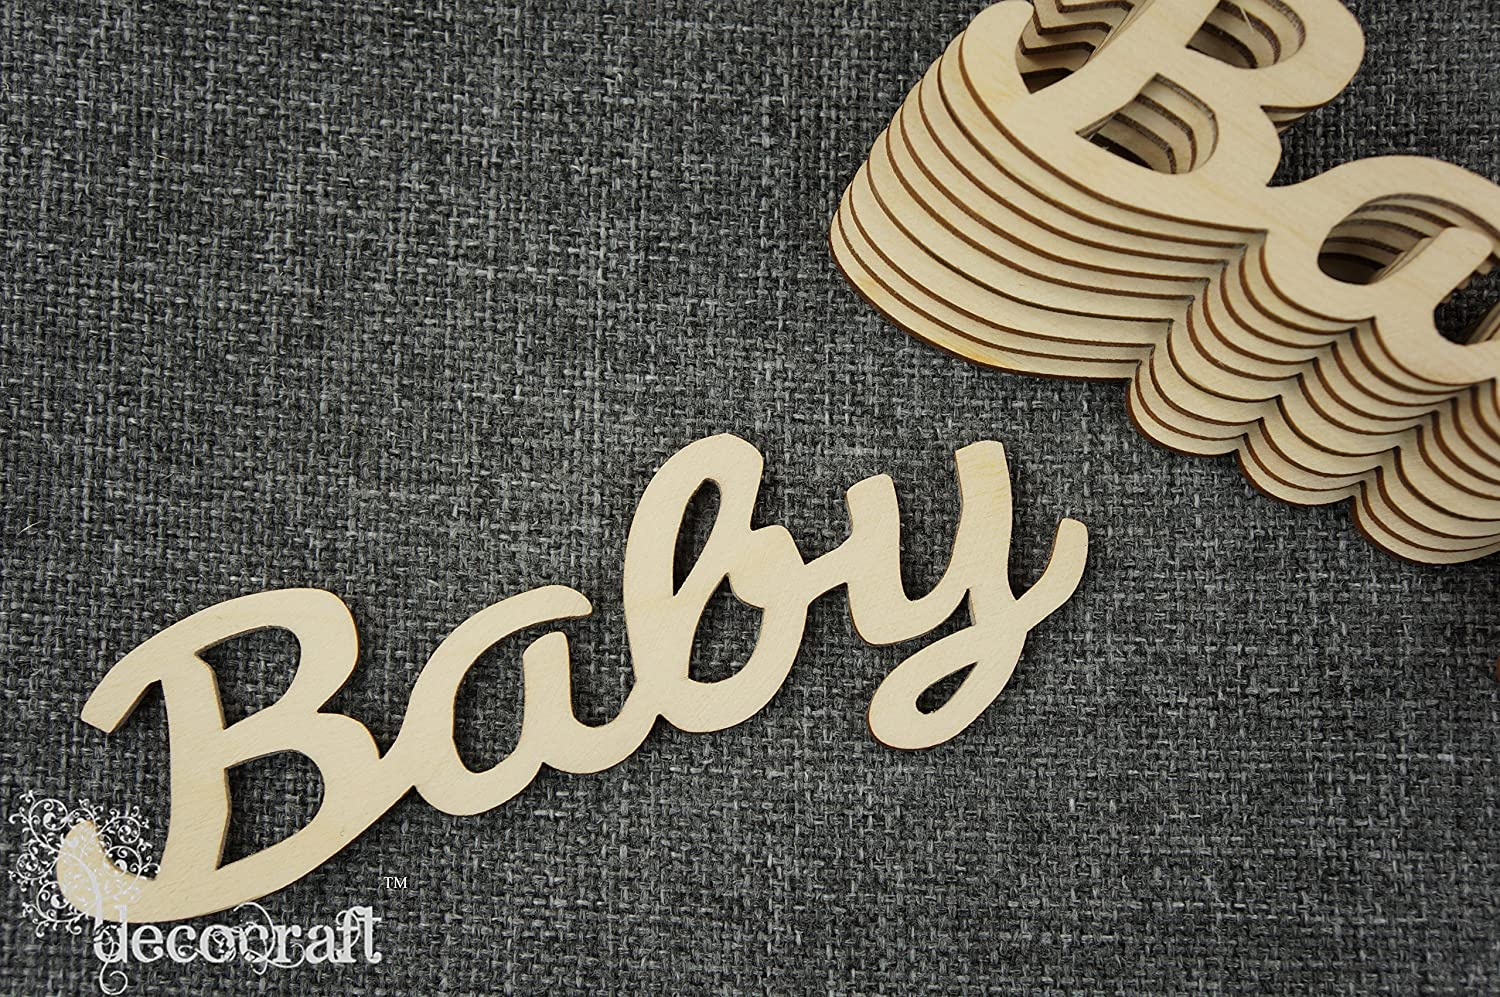 W76 3 x Plain Wooden Small Baby Plaque Craft Shape Emblishment Decoration